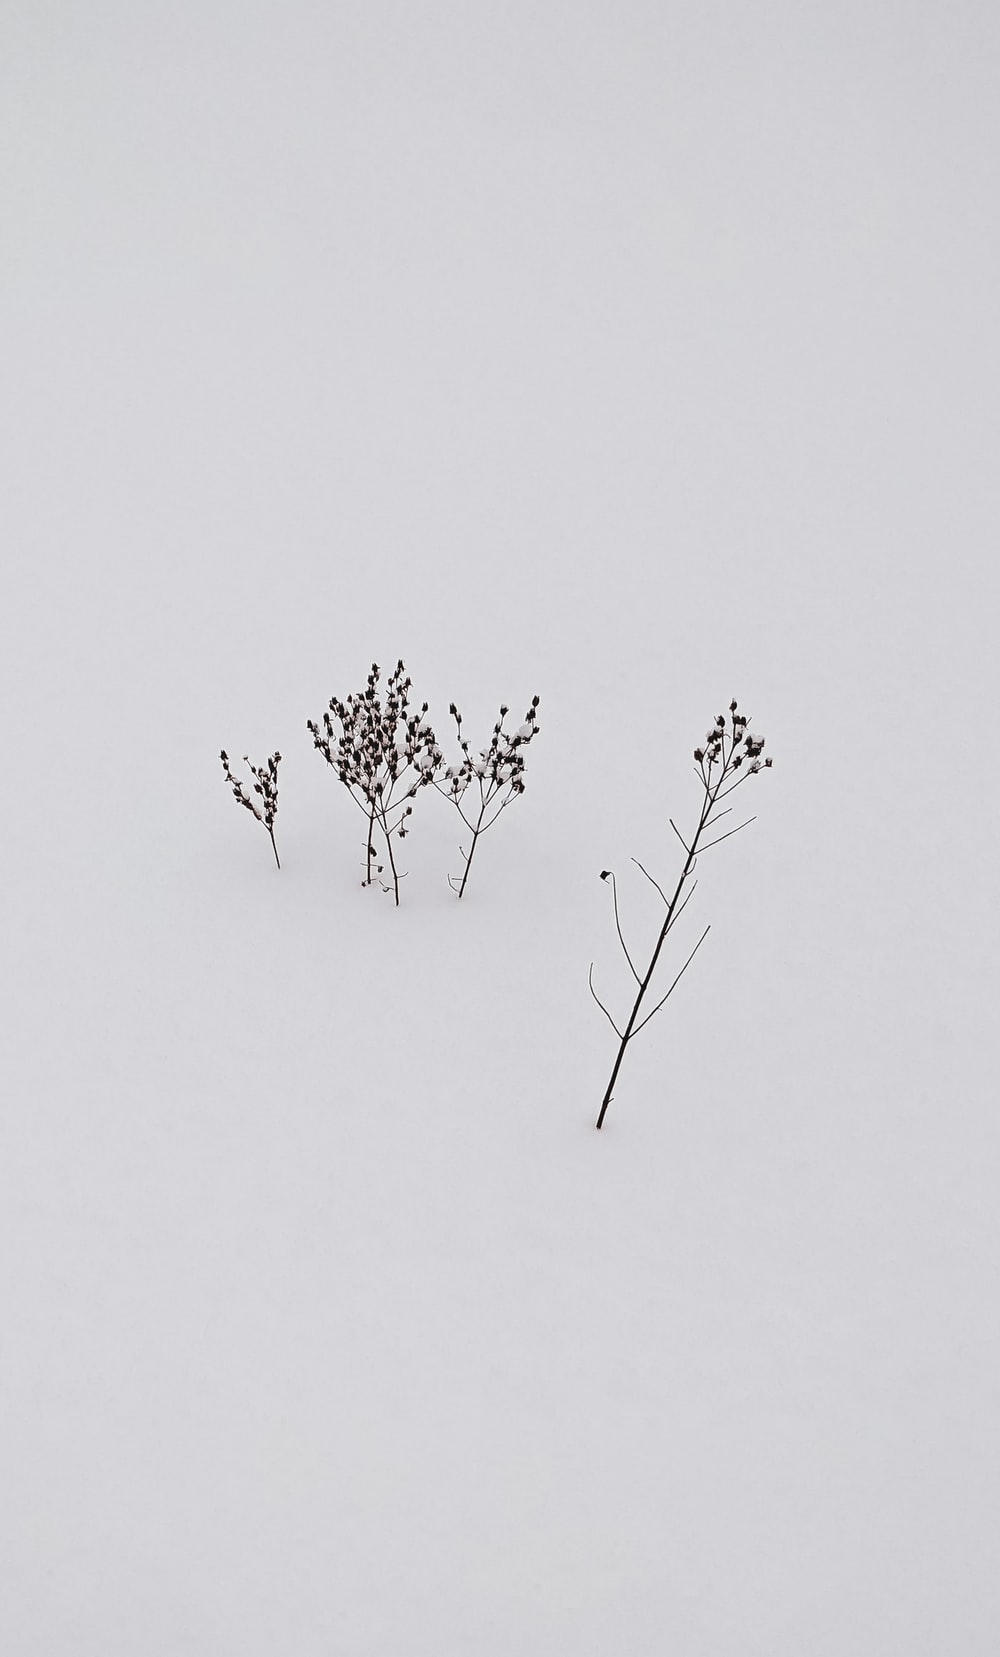 black tree branch on snow covered ground